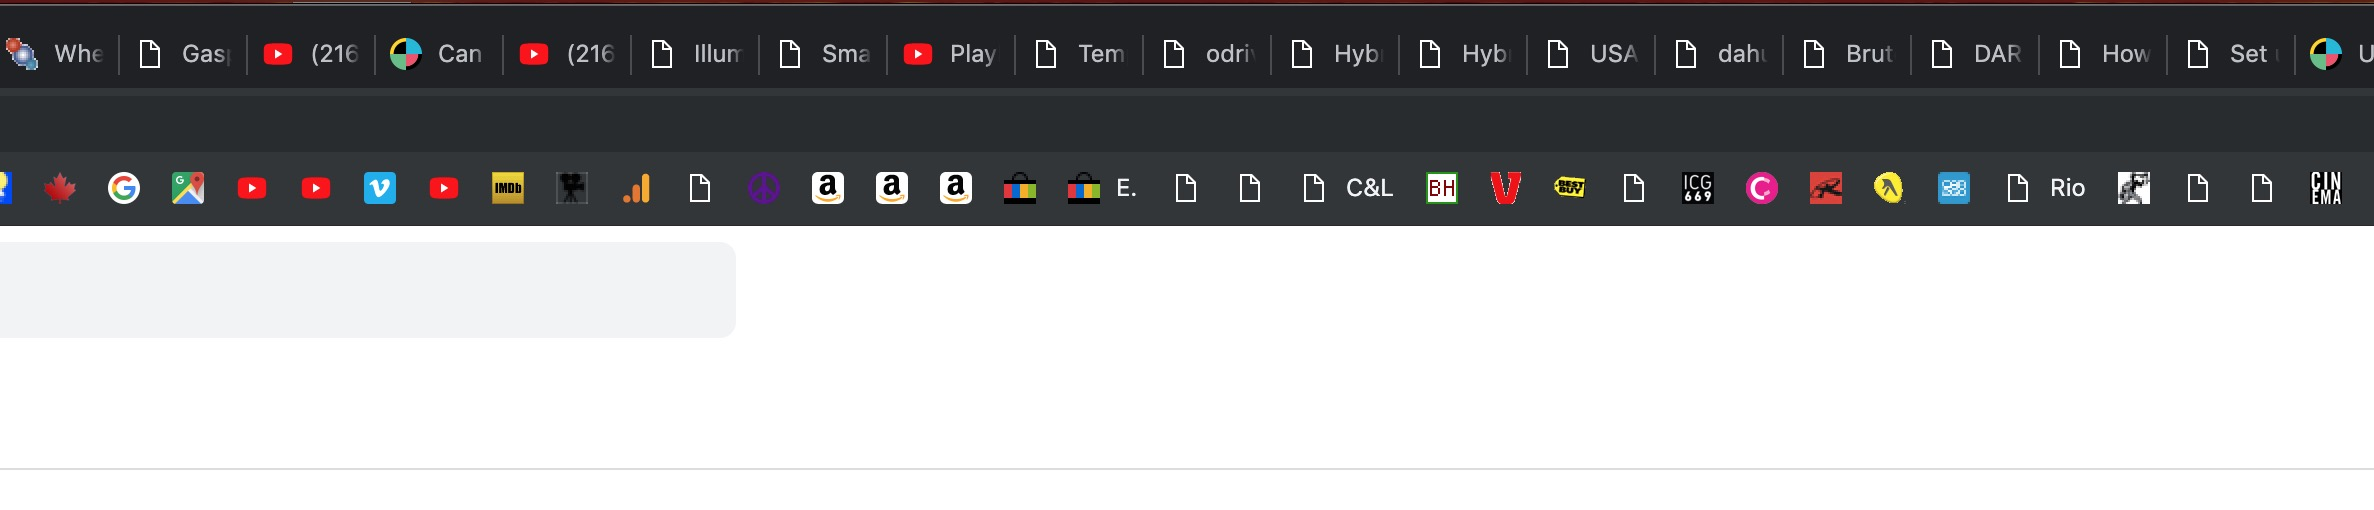 My icons in Chrome window only show as empty square    - Google